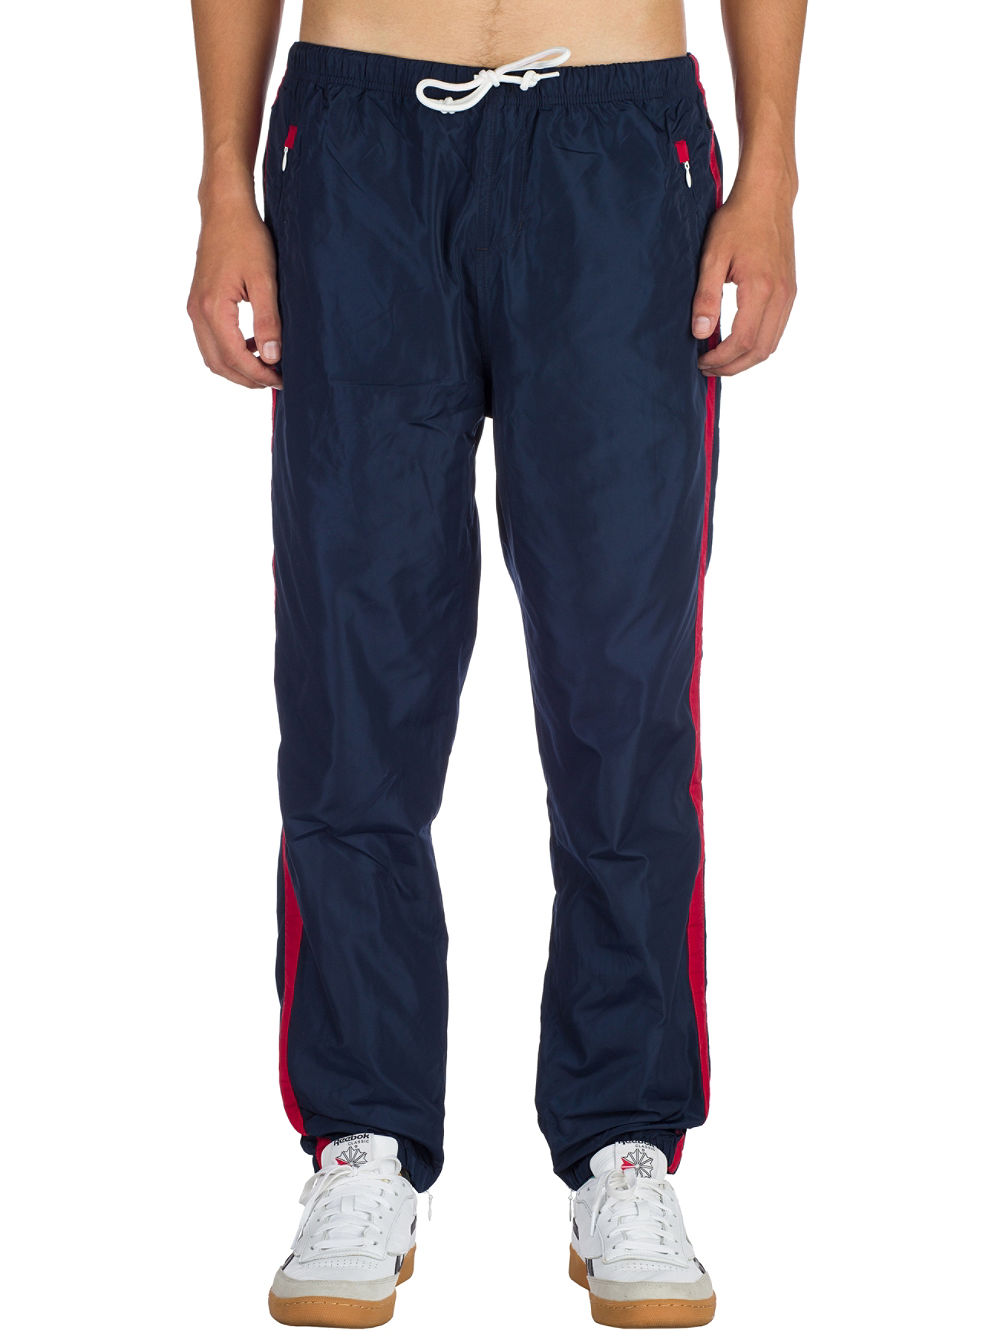 Relay Jogging Pants